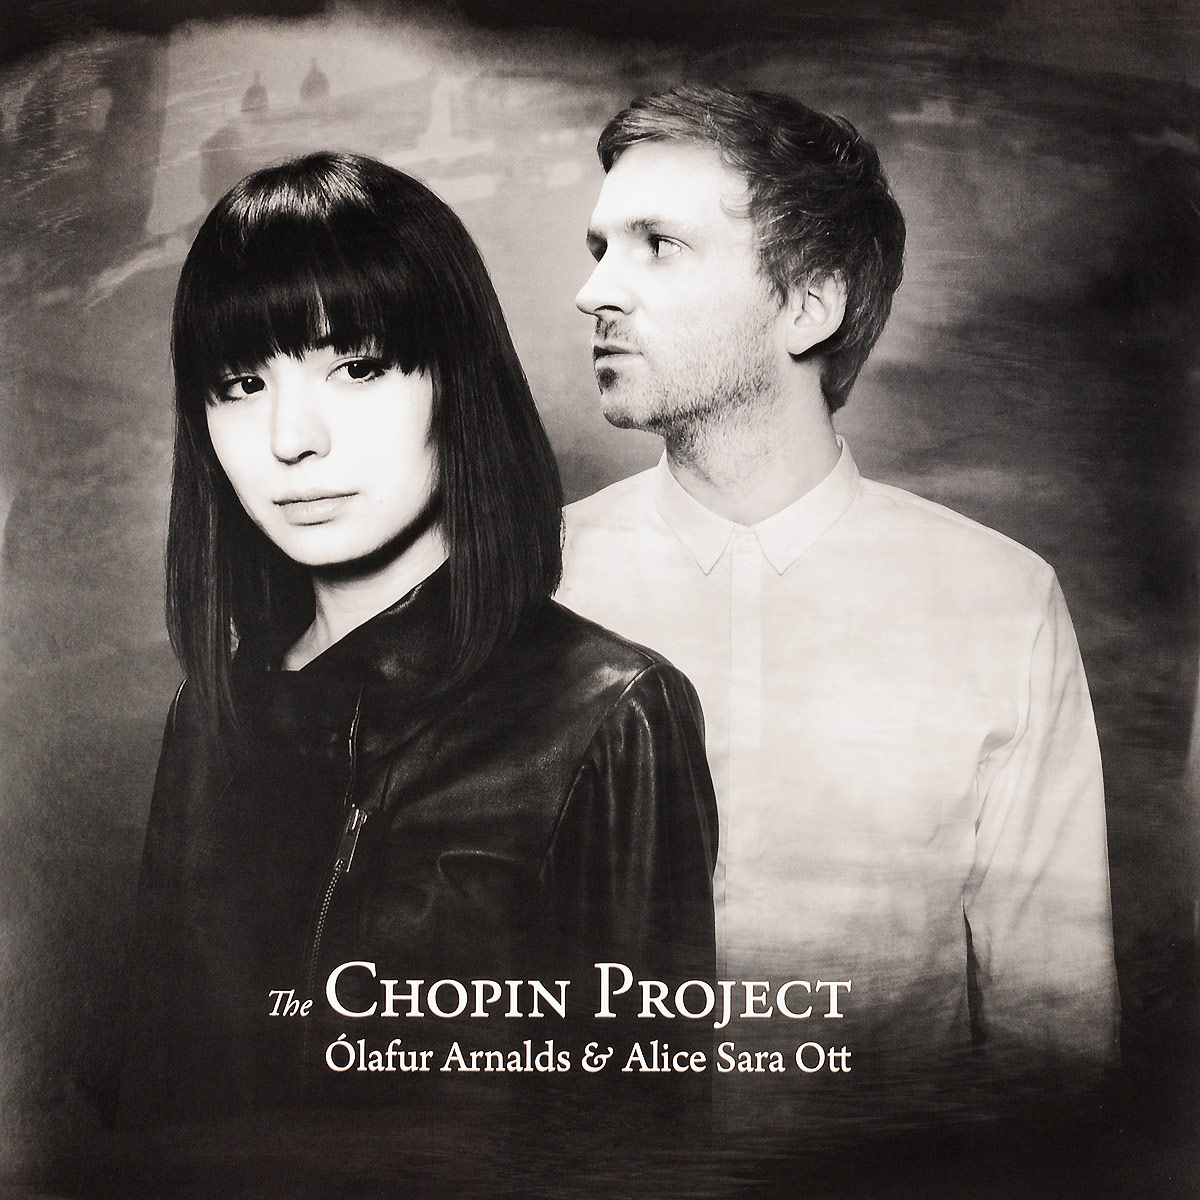 Олафур Арналдс,Элис Сара Отт Olafur Arnalds And Alice Sara Ott. The Chopin Project (LP) олафур арналдс olafur arnalds for now i am winter